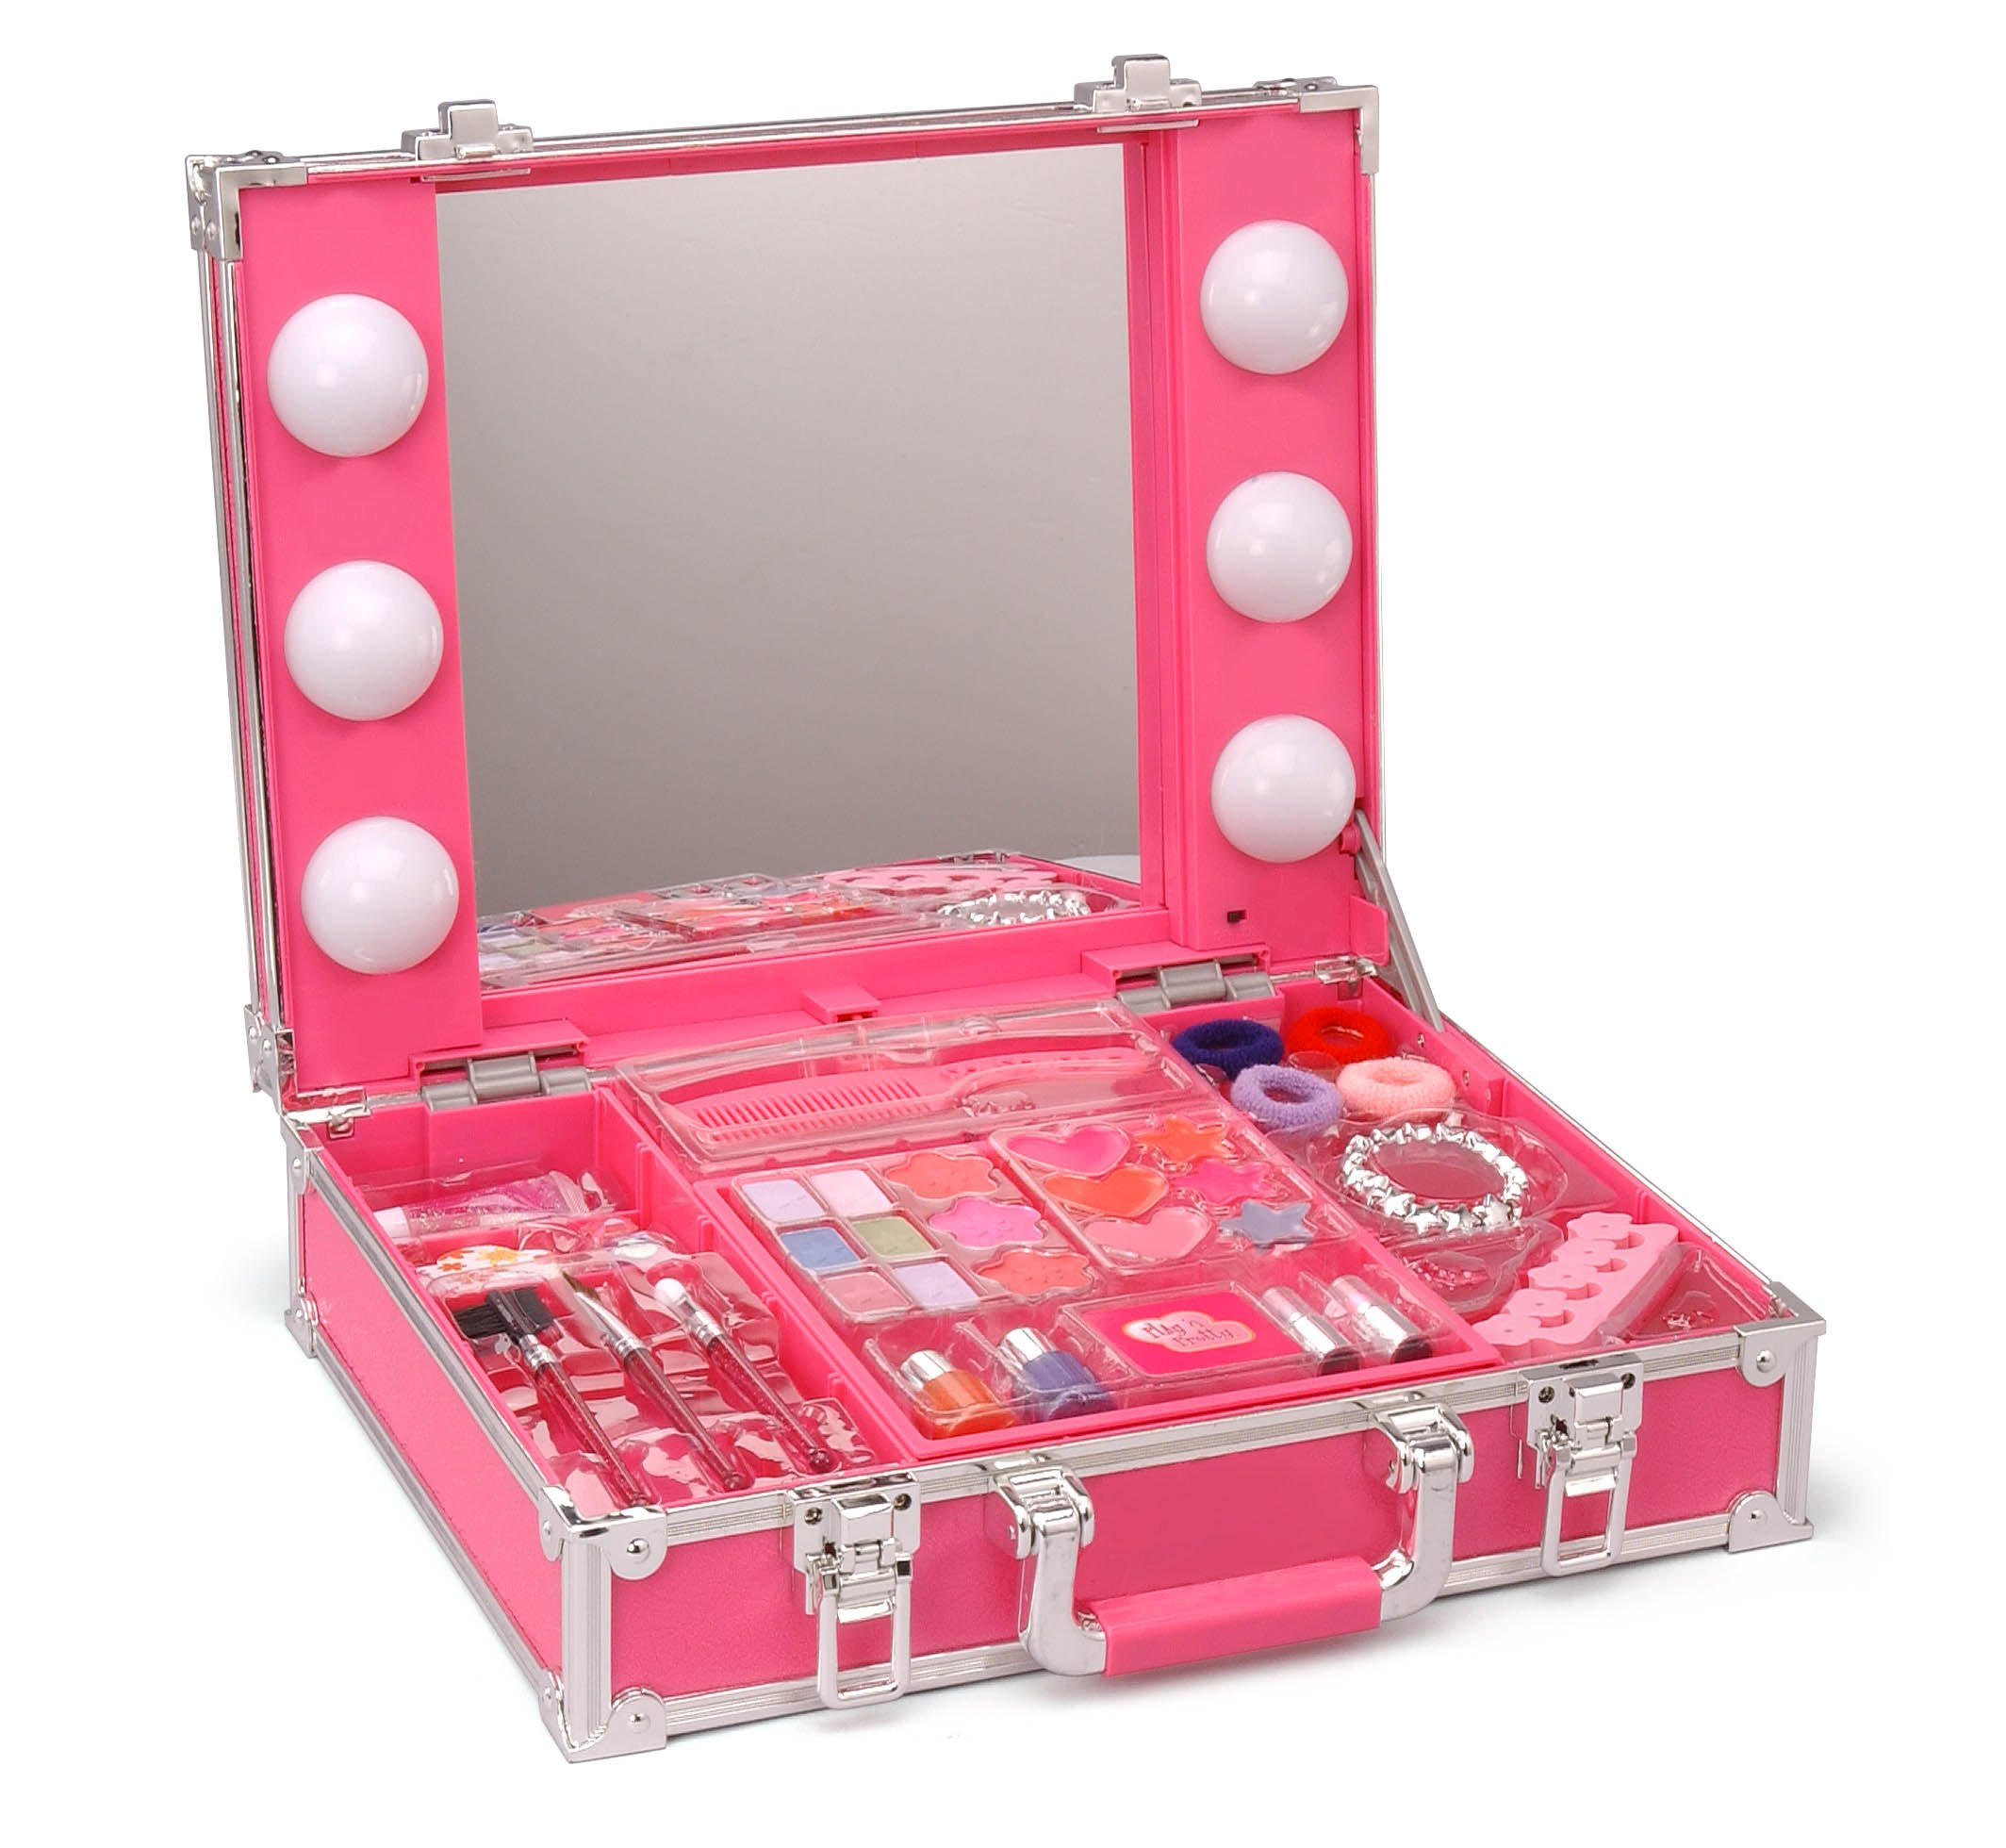 New Beauty Star Station Lighted Vanity Mirror Set Kit for Girls Shadow Gloss eBay